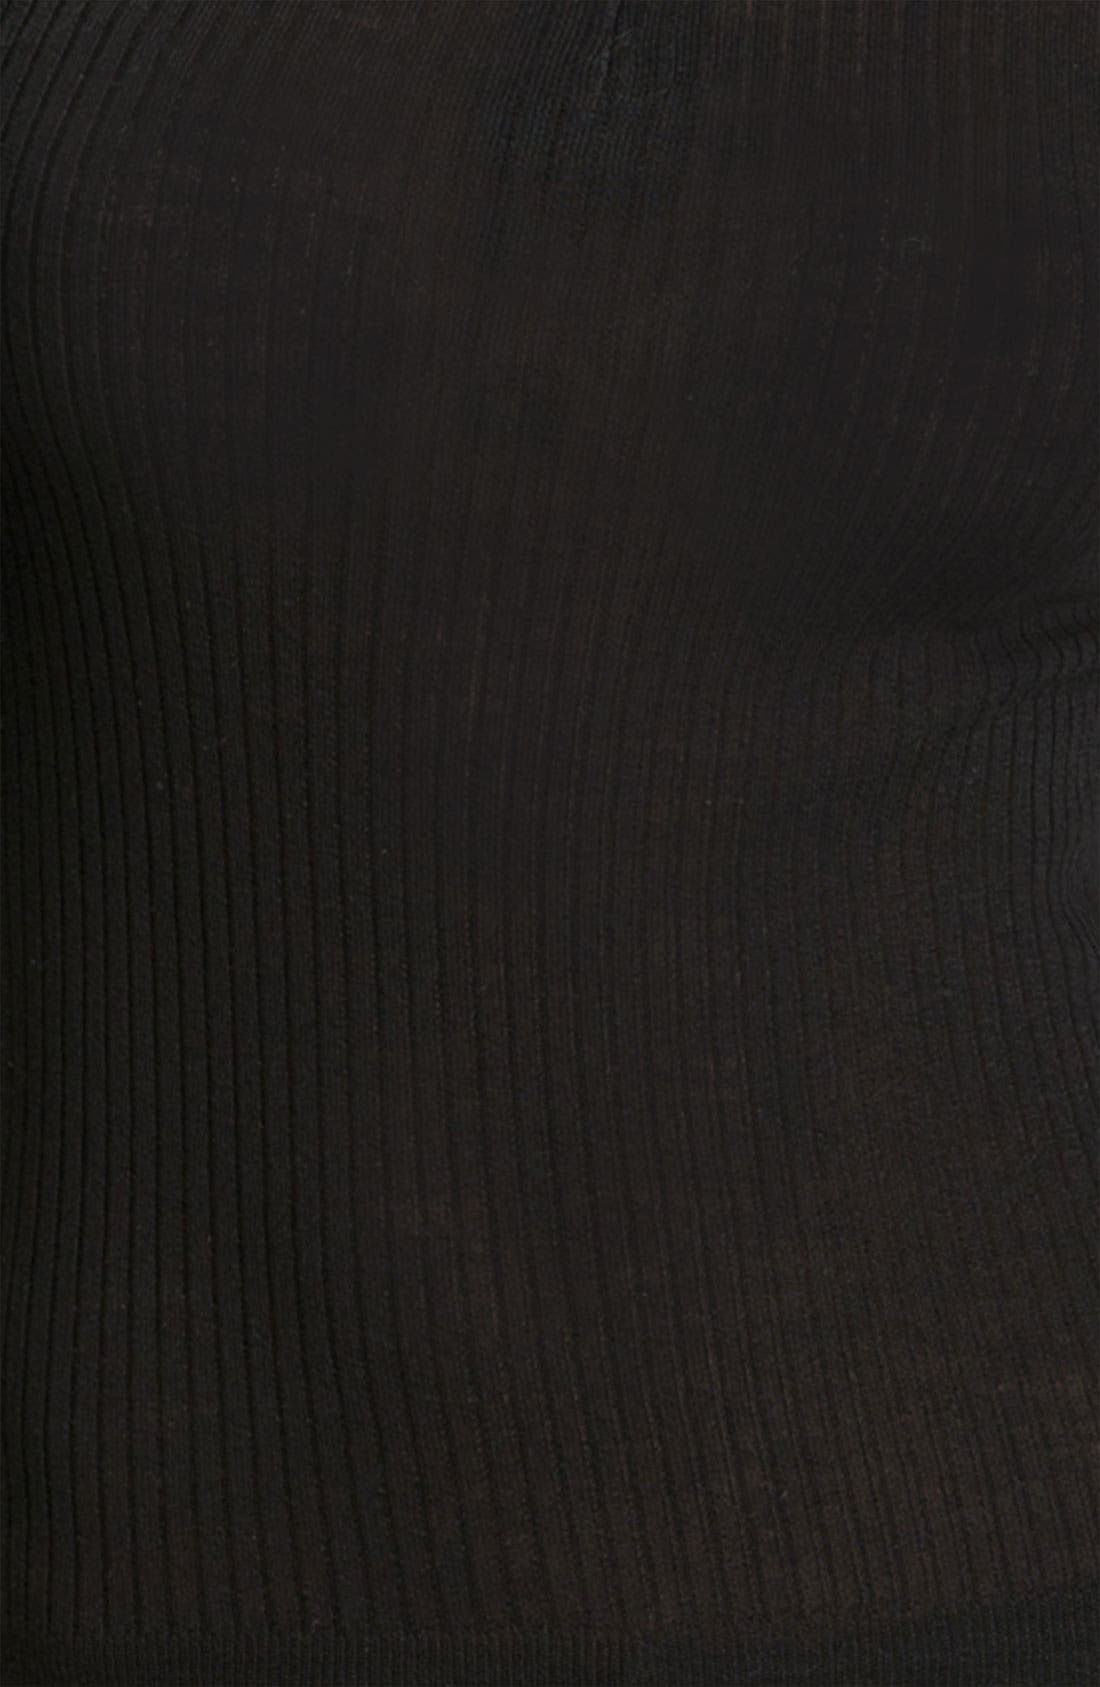 Alternate Image 3  - Tory Burch 'Antonia' Zip Turtleneck